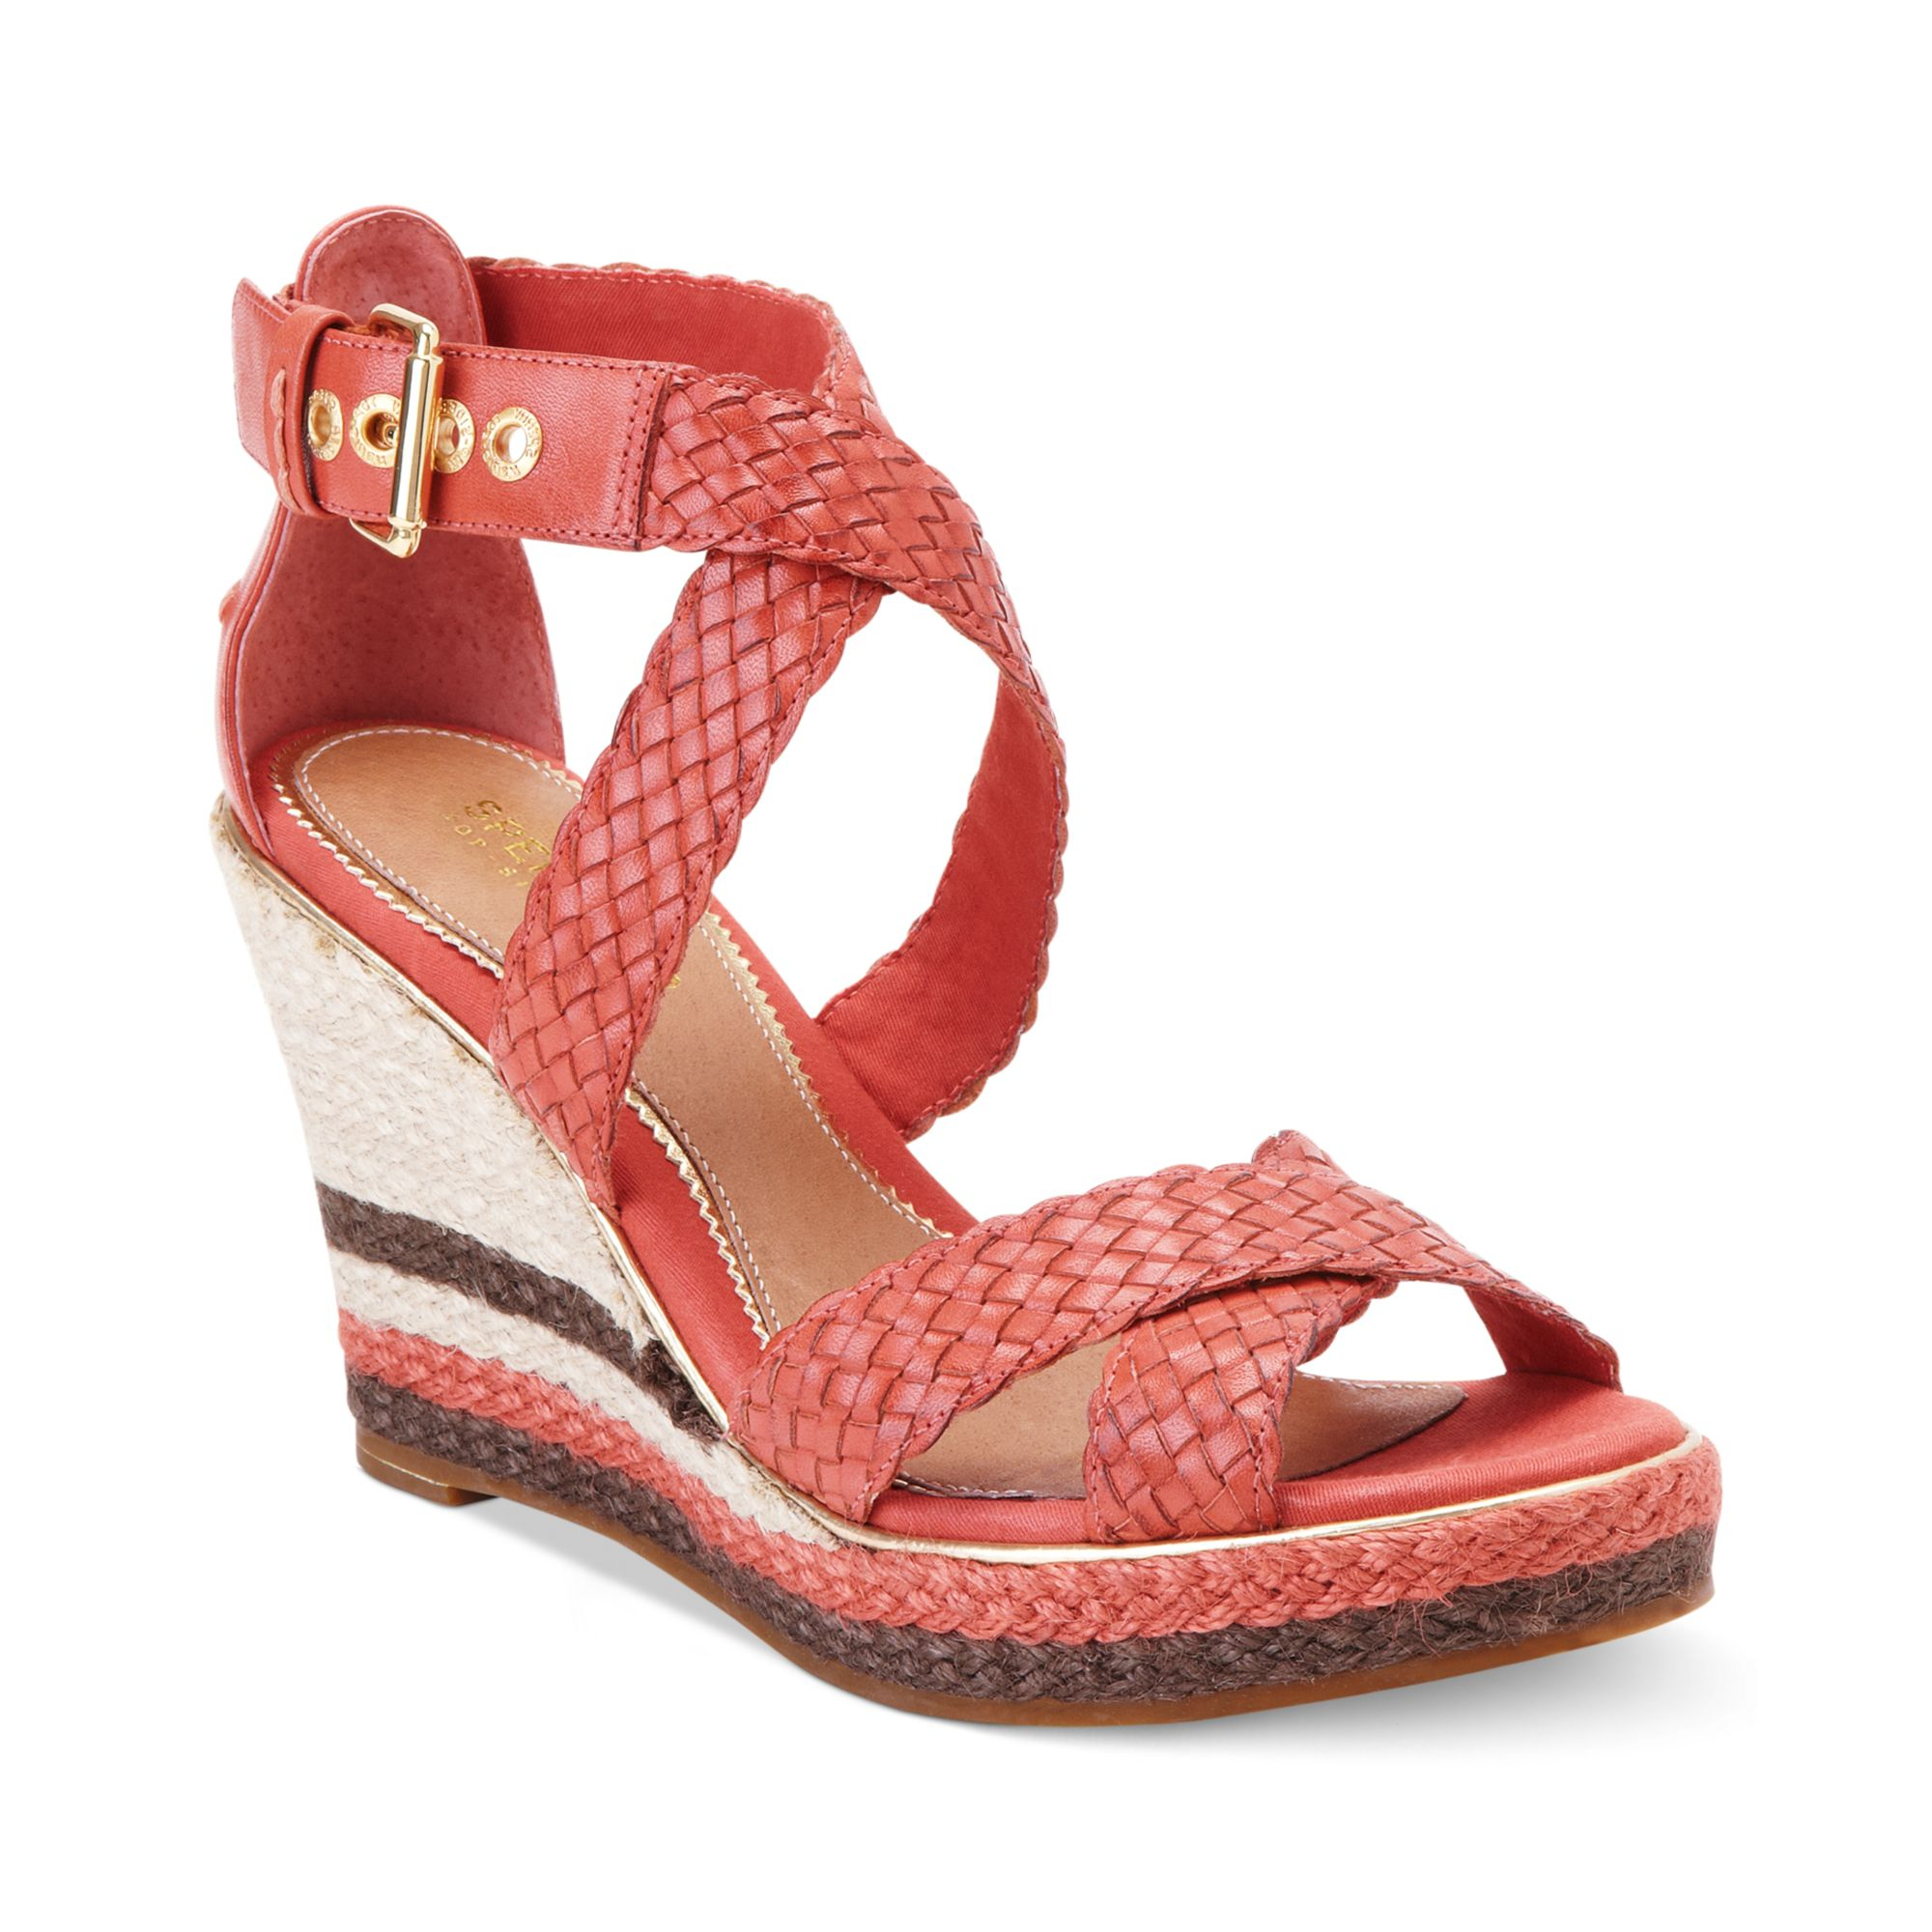 sperry top sider womens harbordale platform wedge sandals